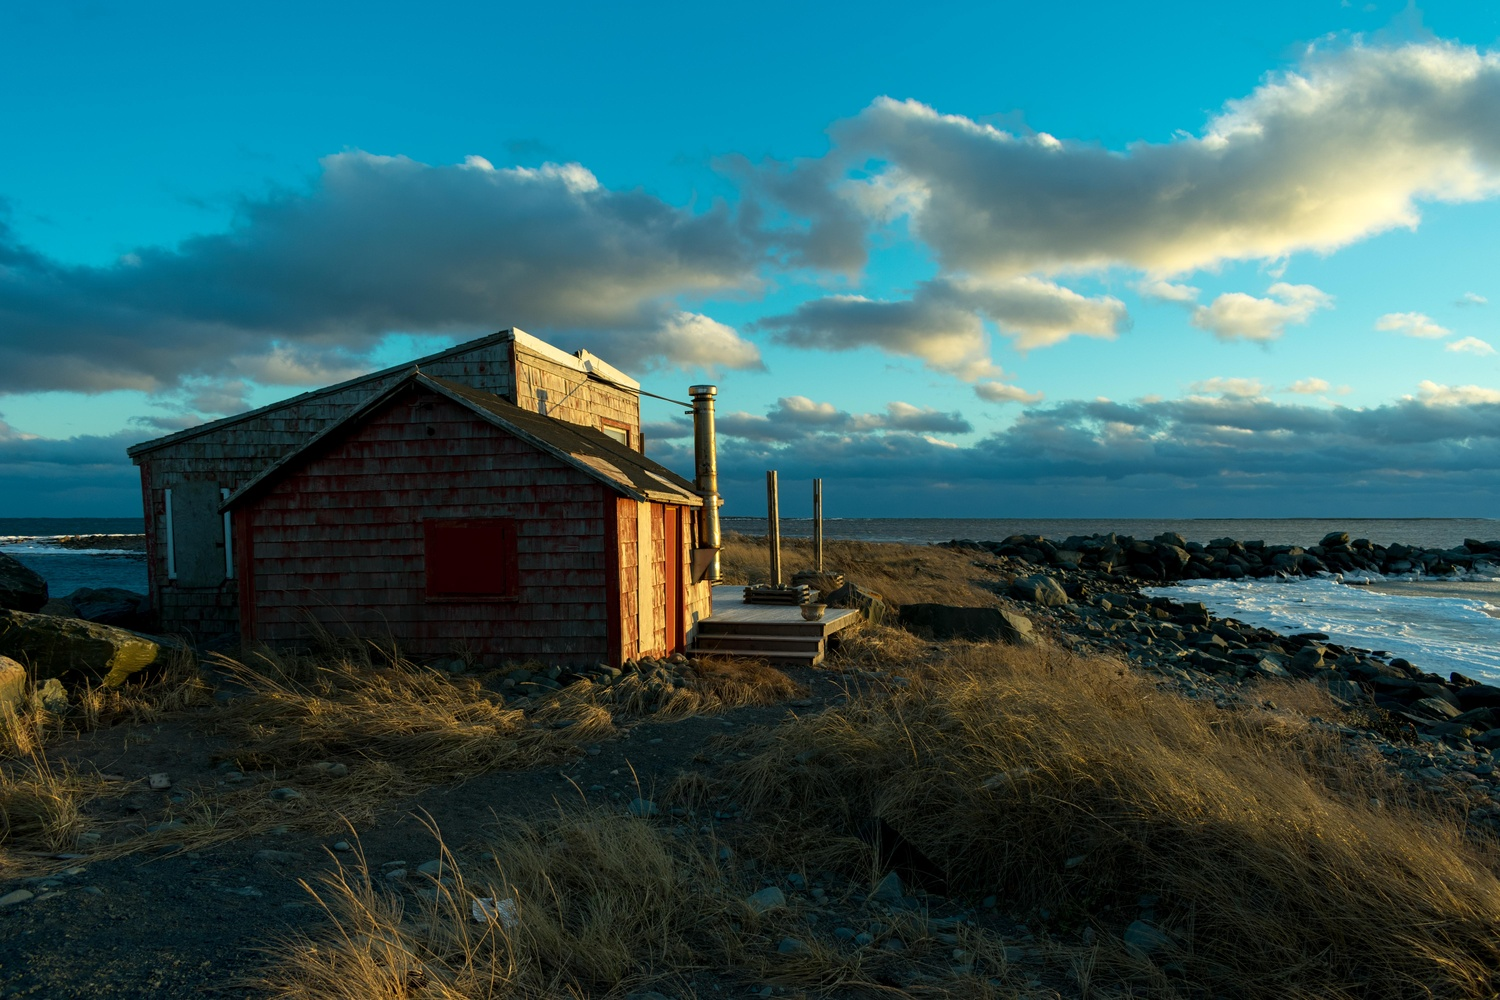 Red Shed at Fishermans Reserve Three Fathom Harbour by David Swanson